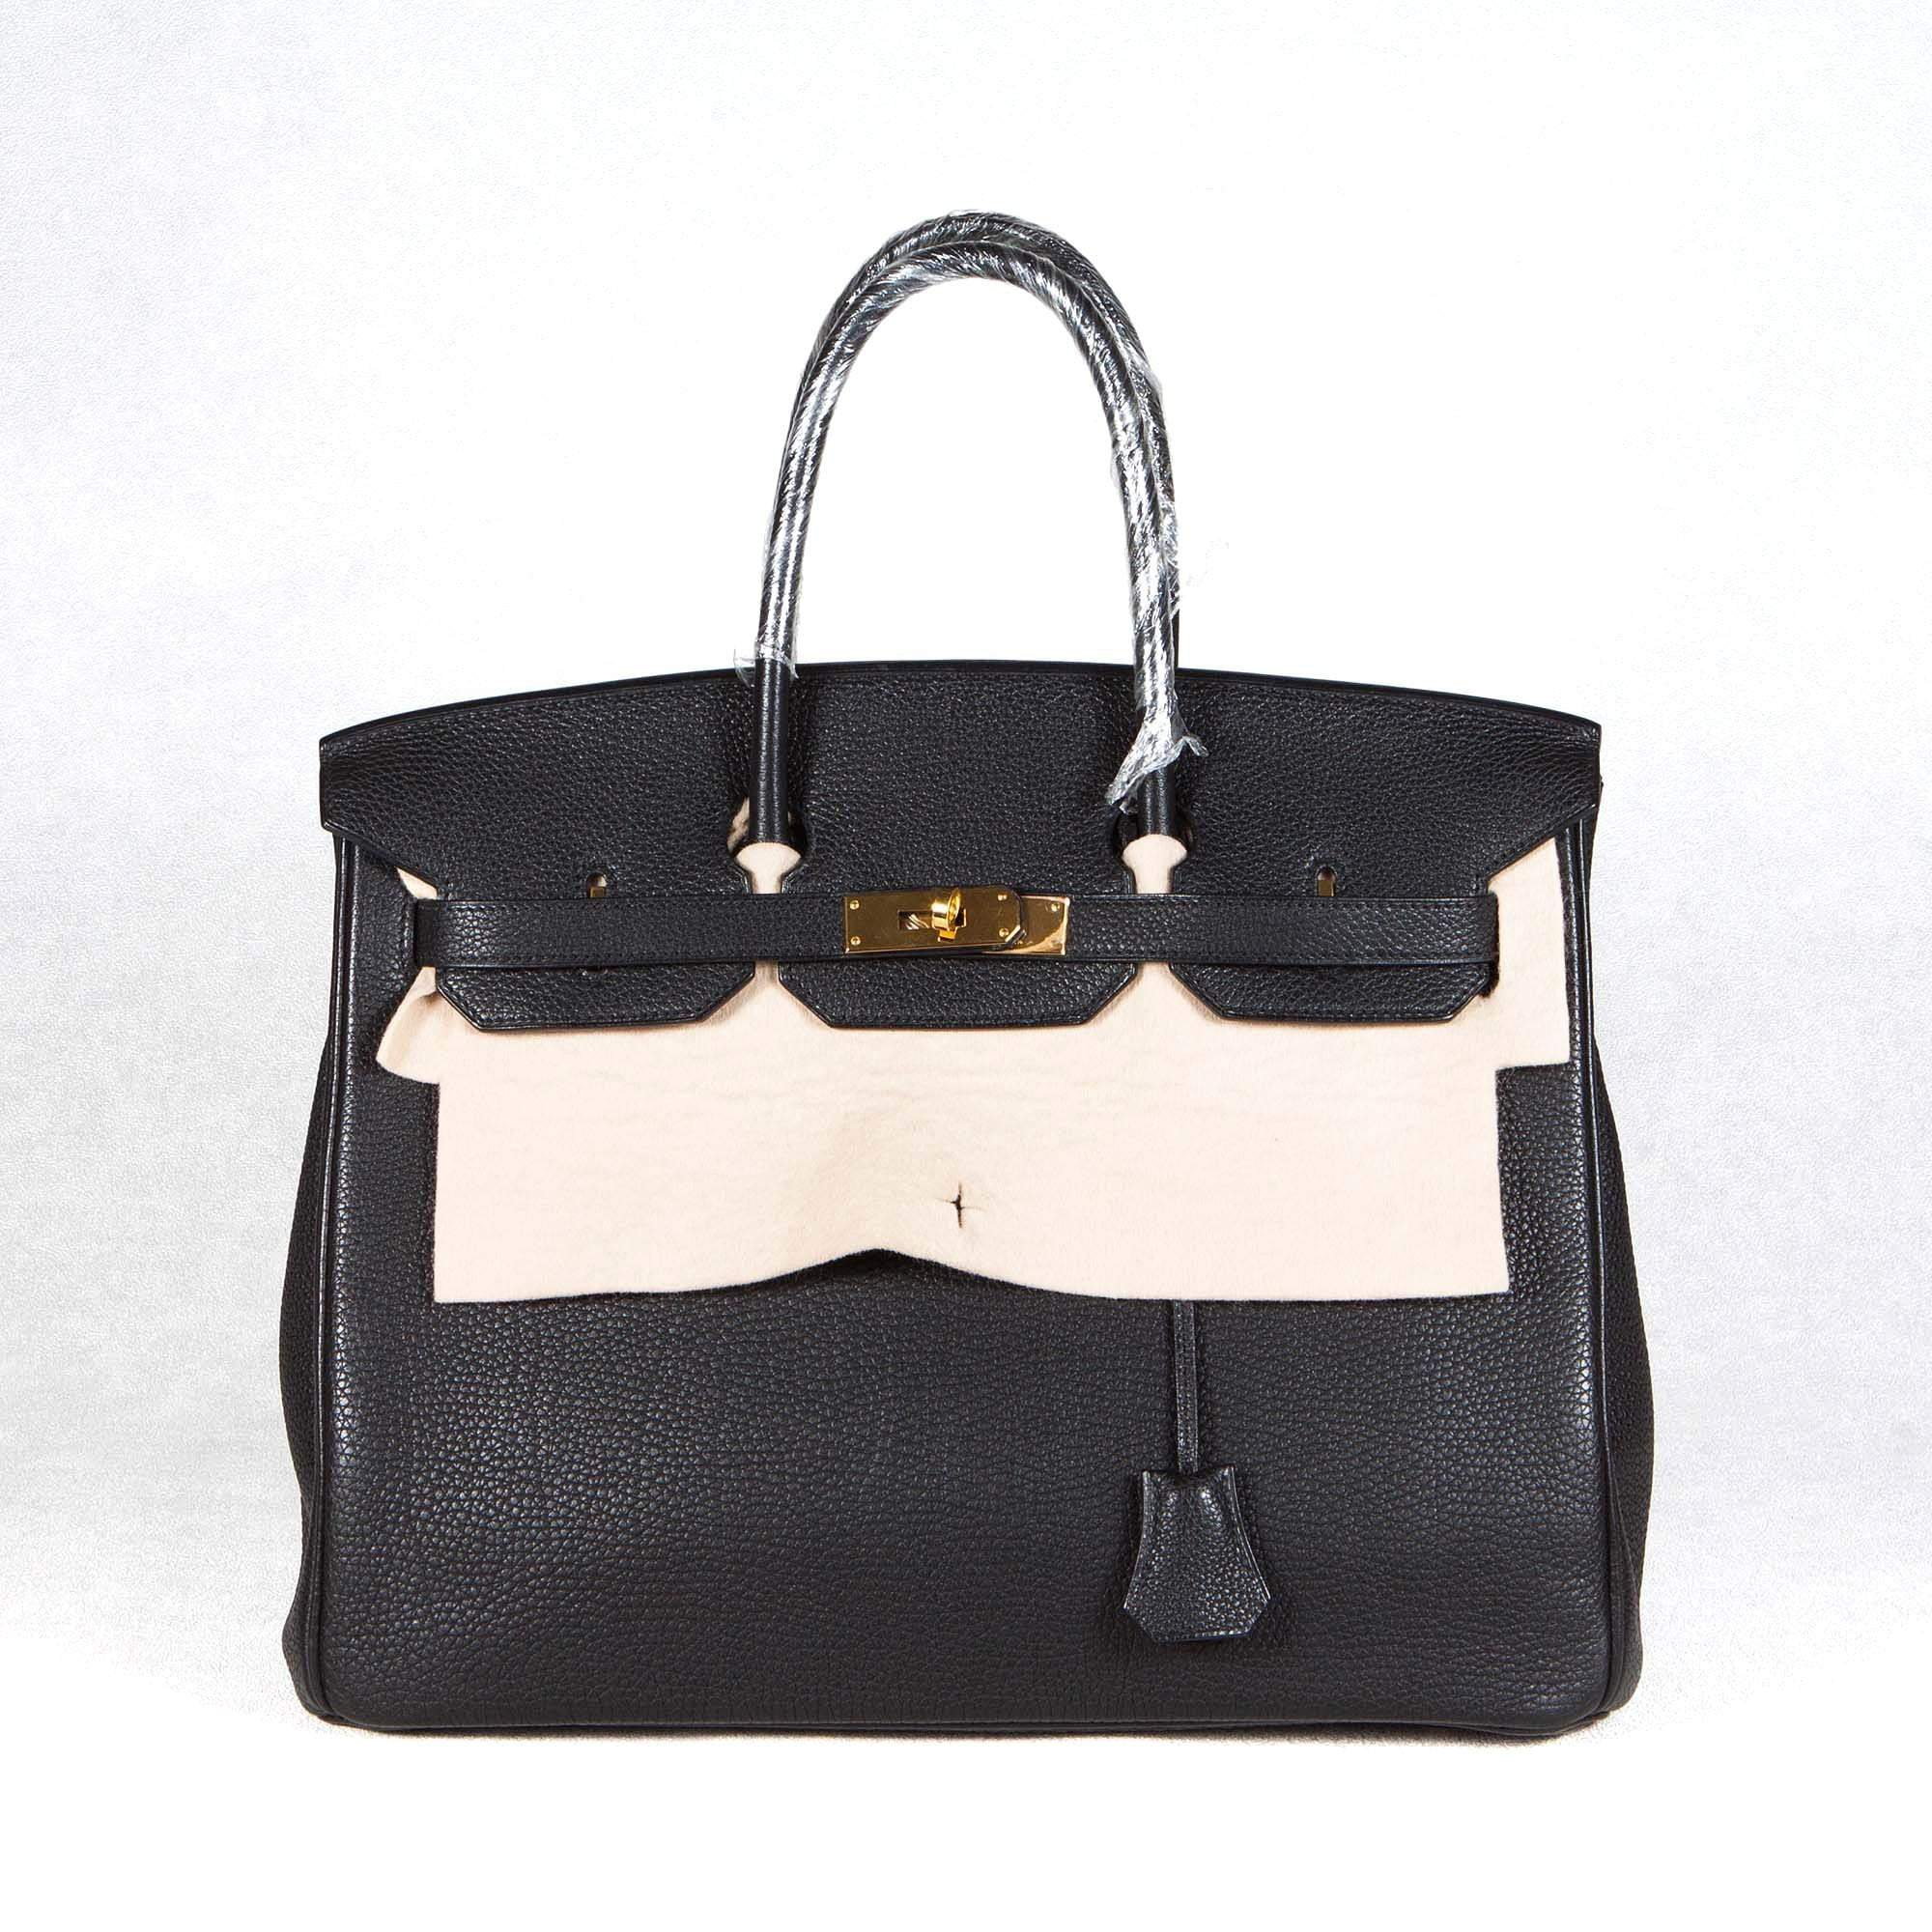 Hermes  Birkin 35 Black Togo Leather Bag